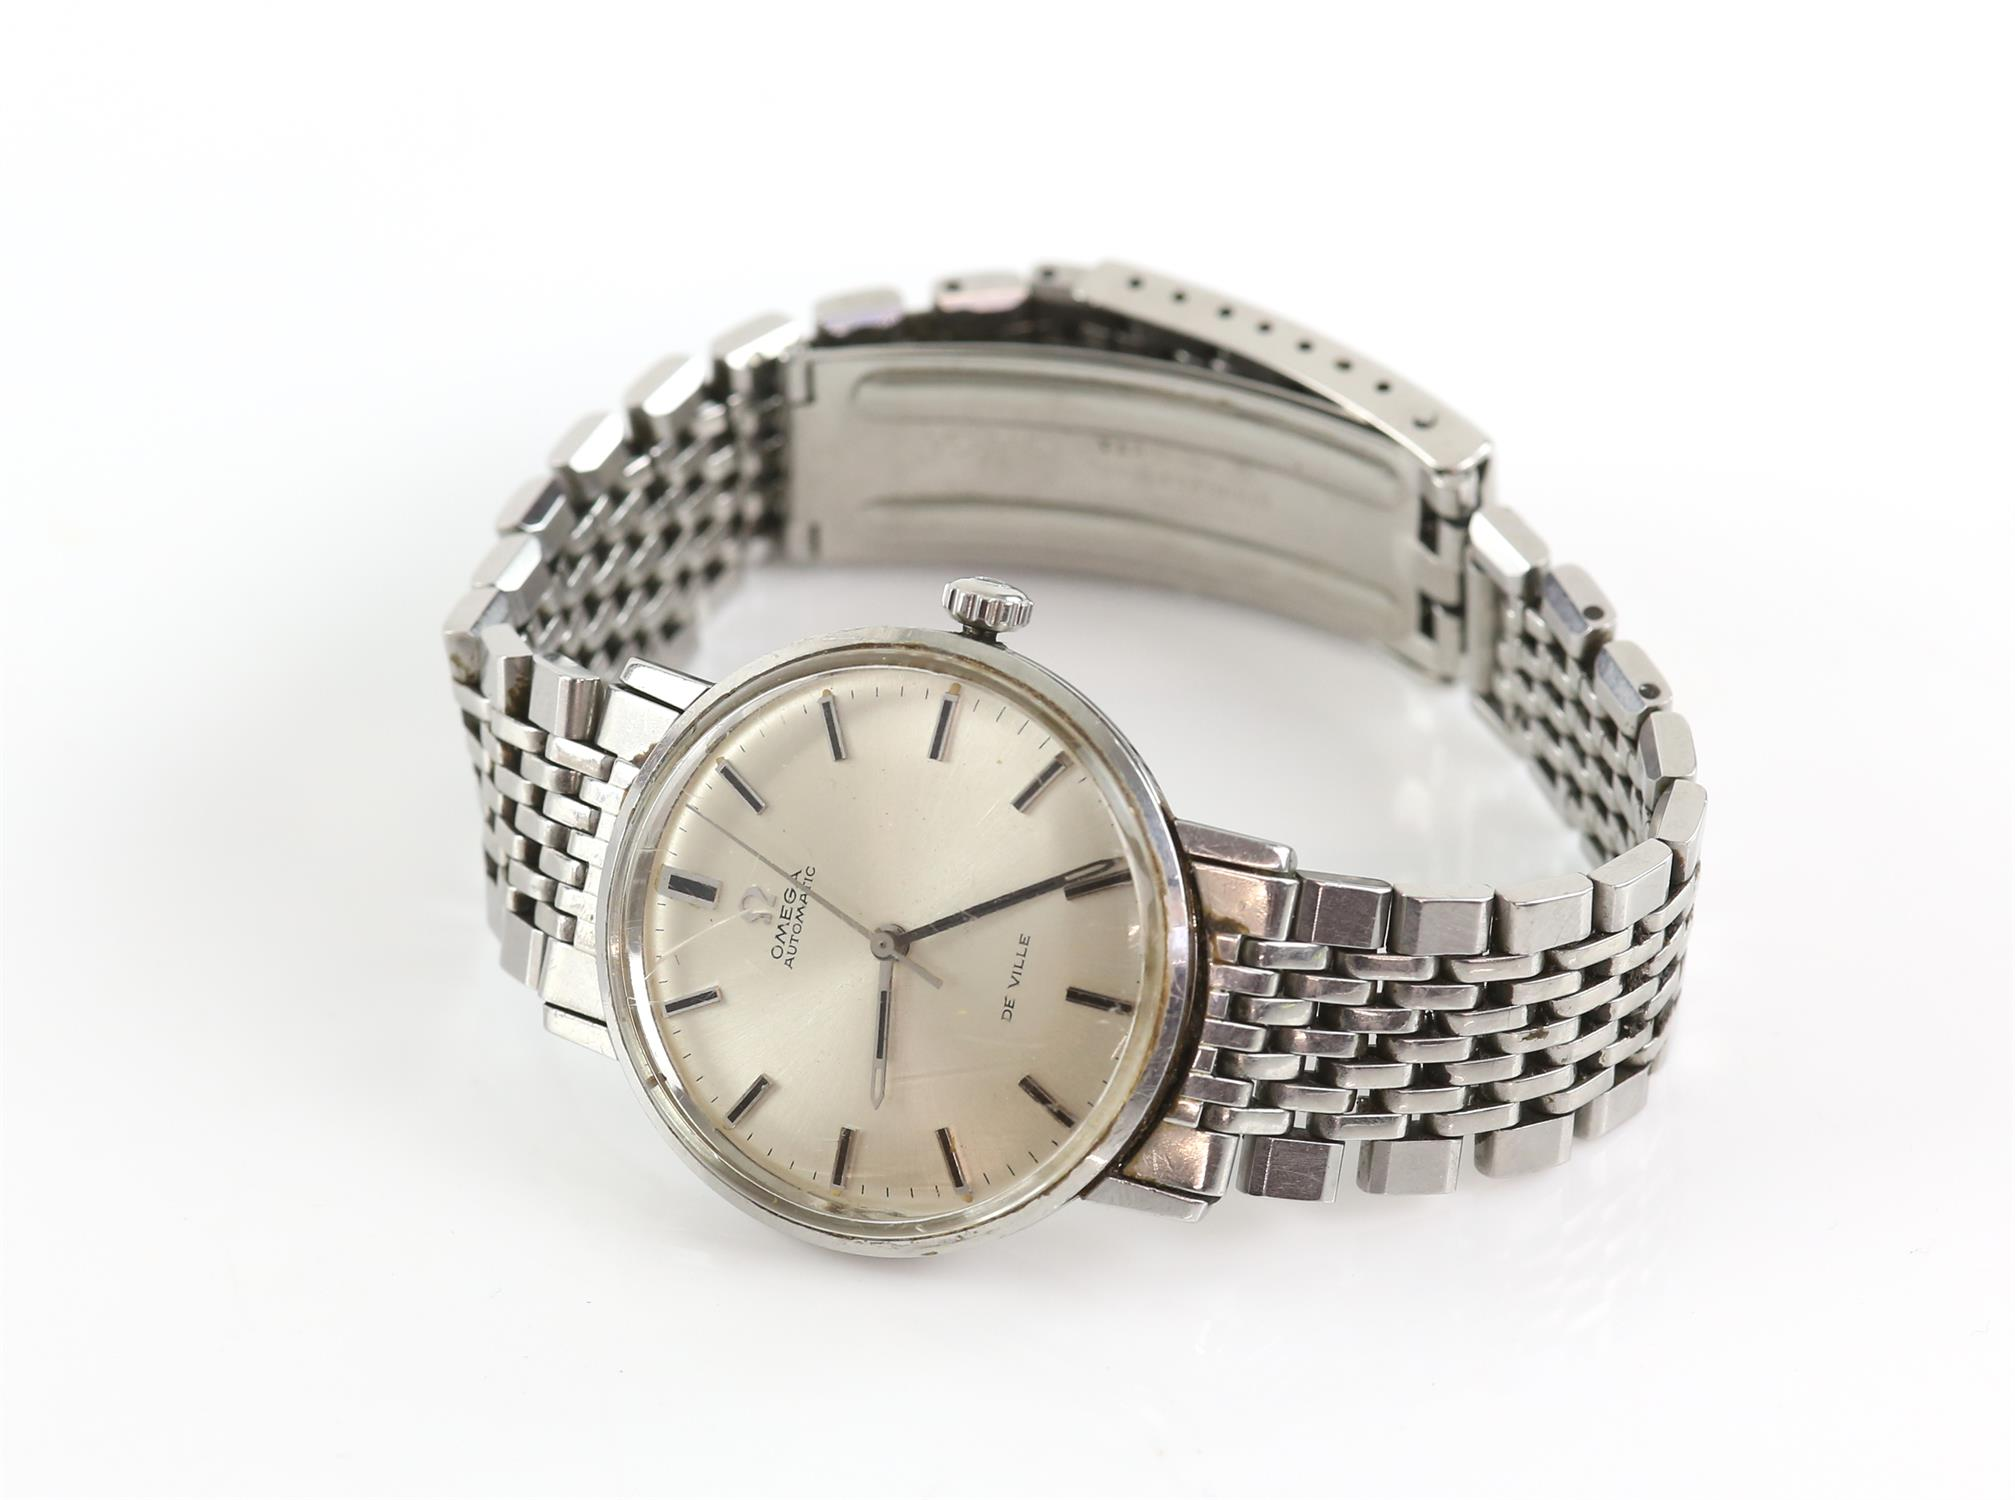 Omega, A Gentleman's Seamaster De Ville, stainless steel wristwatch, the signed silvered dial with - Image 2 of 2